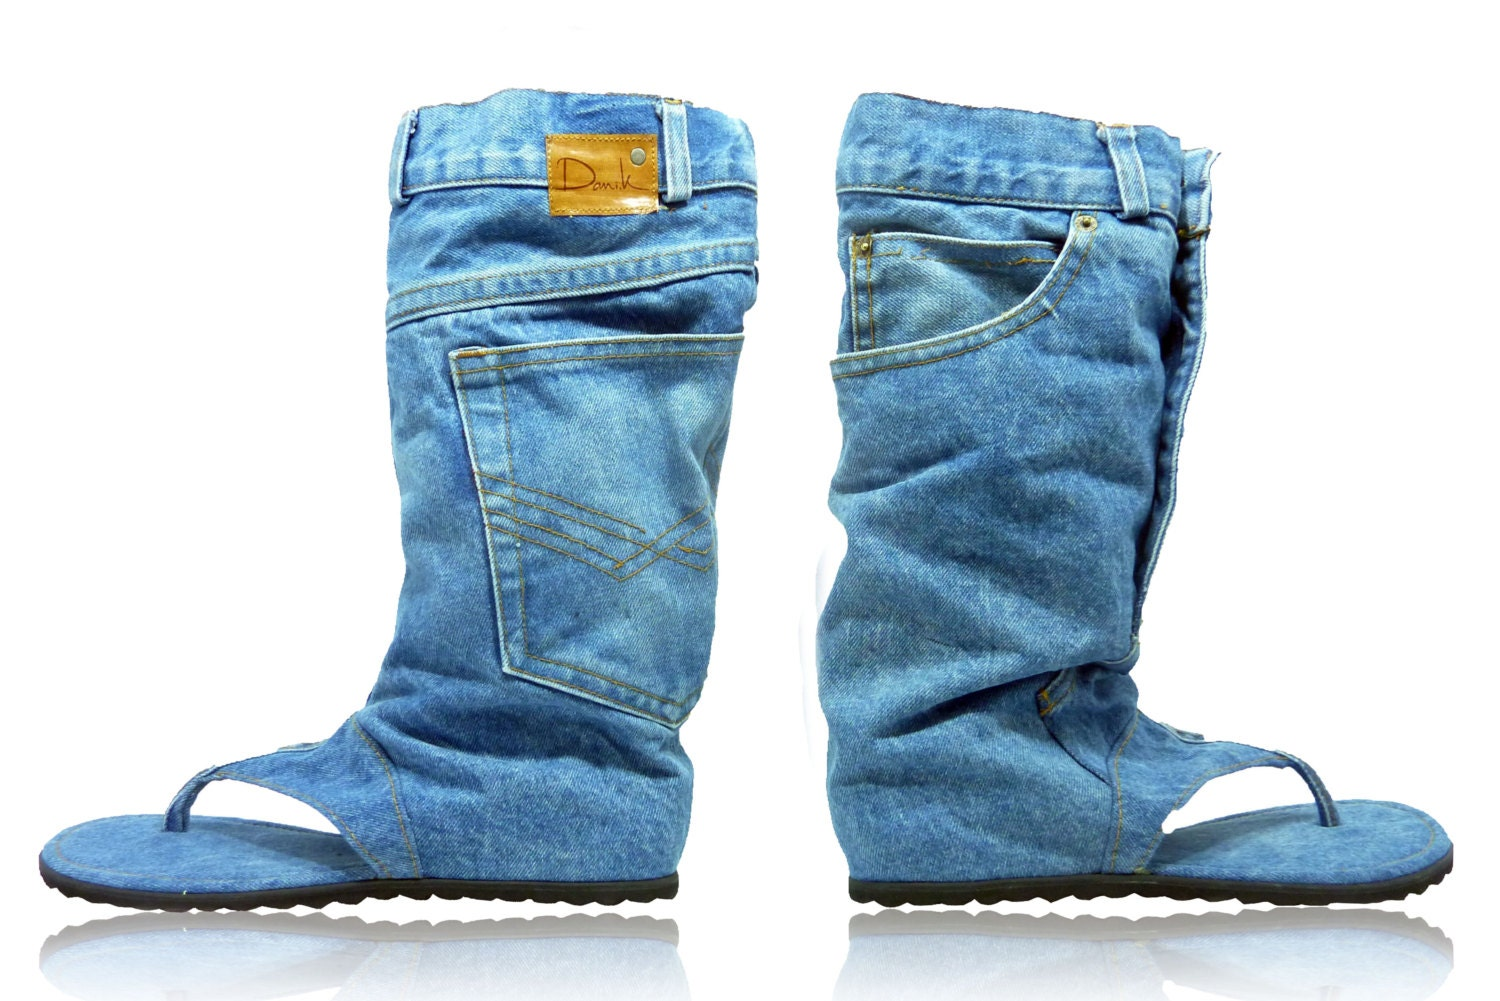 Jeans sandal boots, handmade. size US 10, Euro 42